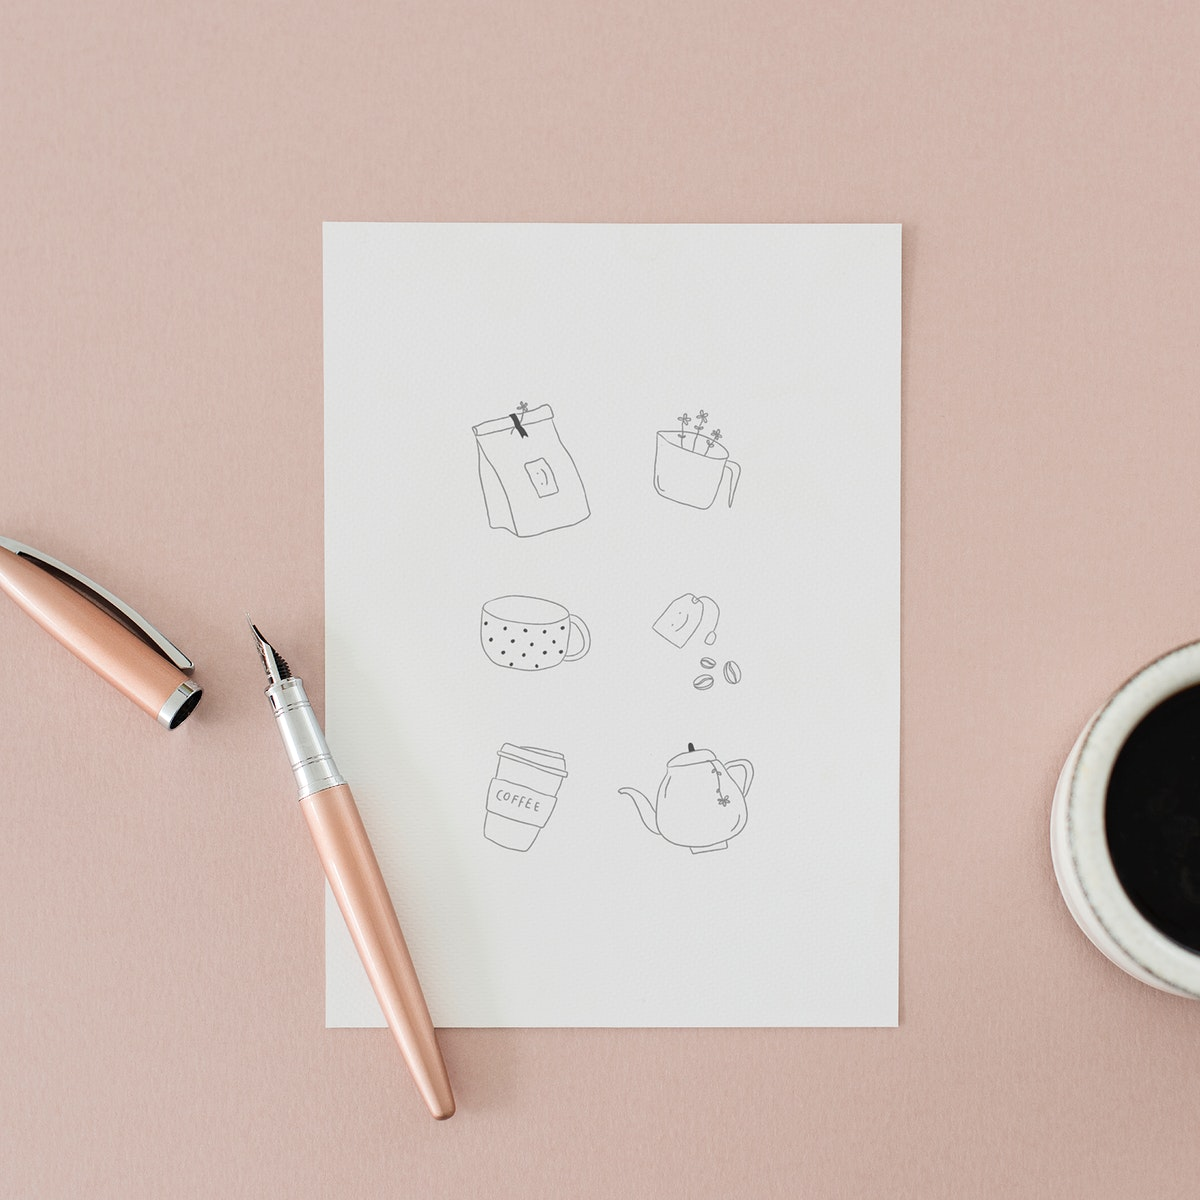 Cute coffee doodle elements on a white paper mockup